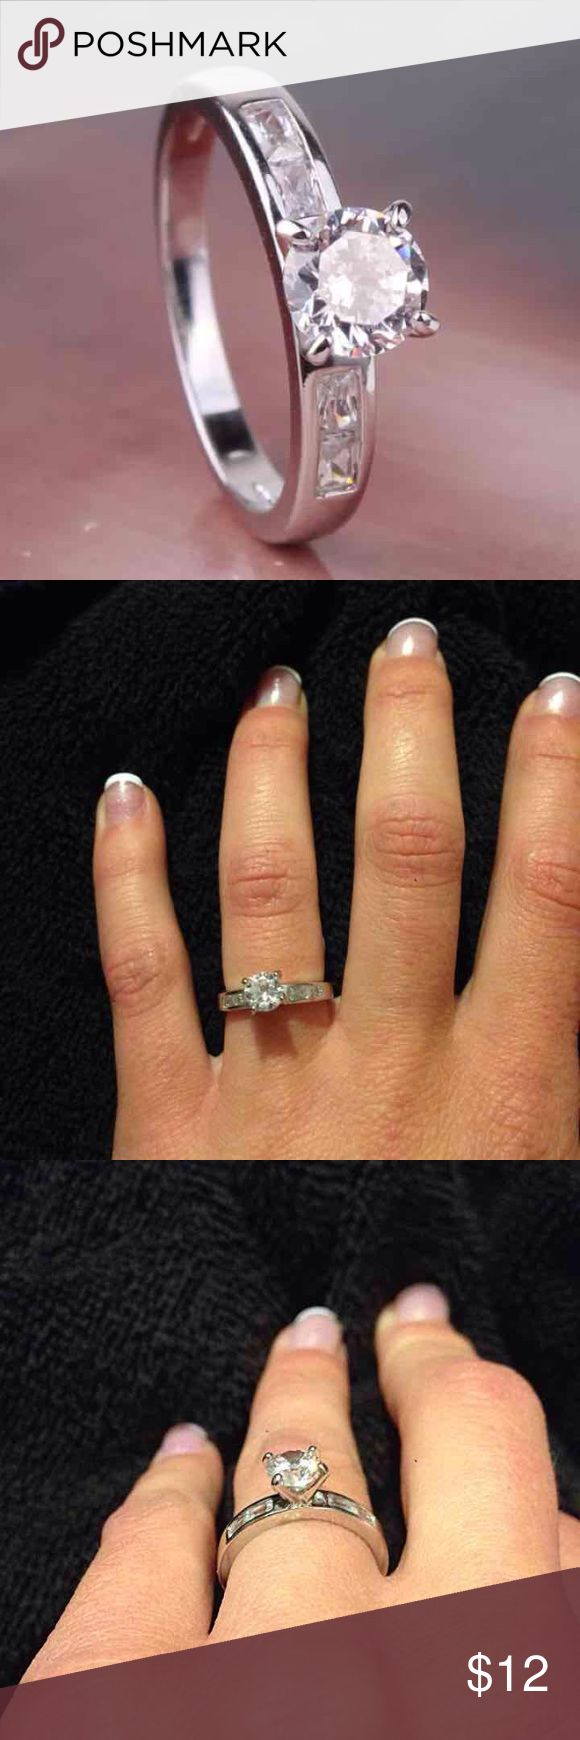 Solitaire White Gold Engagement Ring Round solitaire stone with Emerald cut stones on either side.  White gold plated ***comes in ring box FIRM PRICE/NO TRADES❗️(cheaper on ♏️) Jewelry Rings